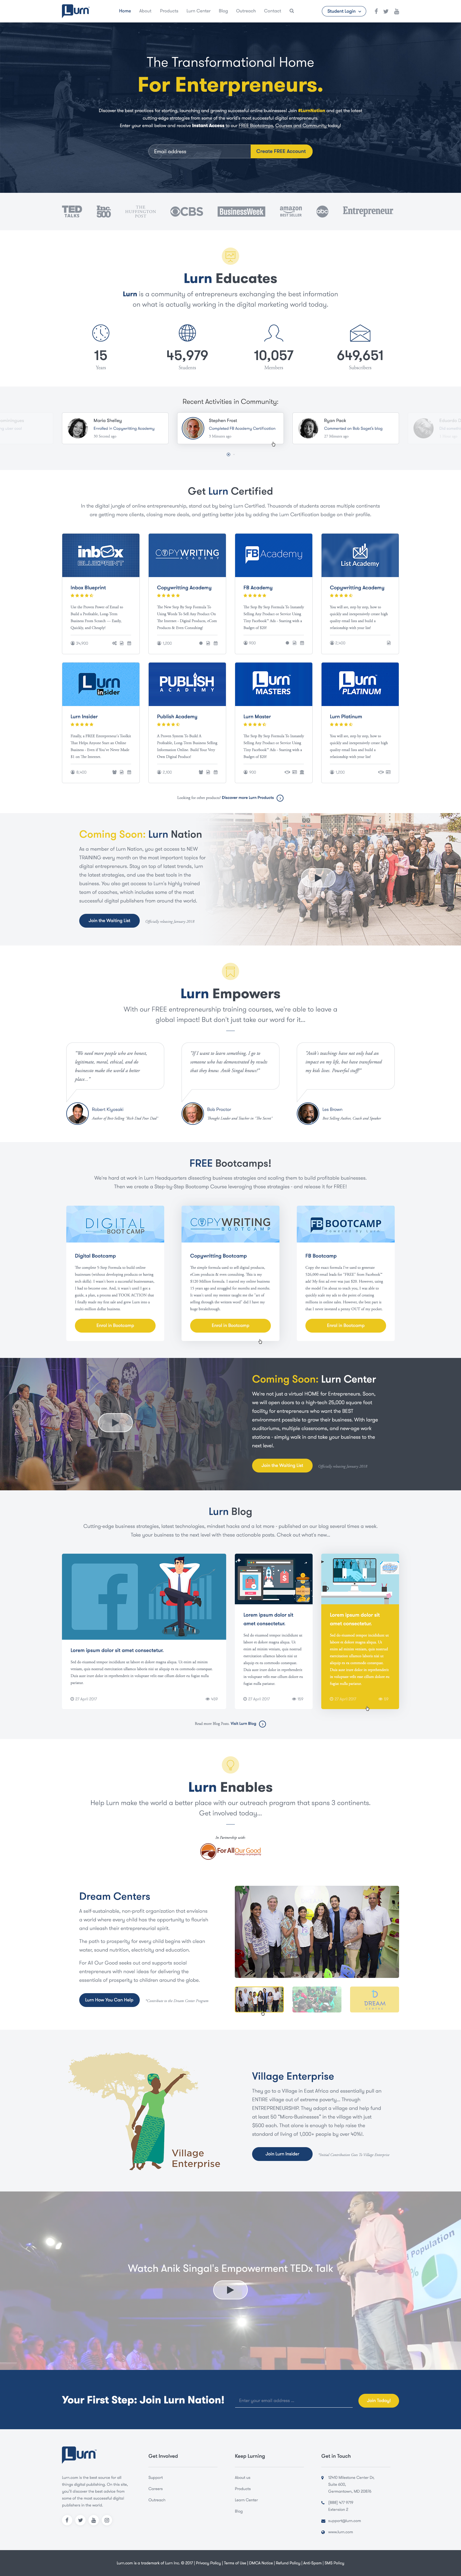 Design #10 by Dunx Design | Big Payout! New Home Page/Brand Site For ...